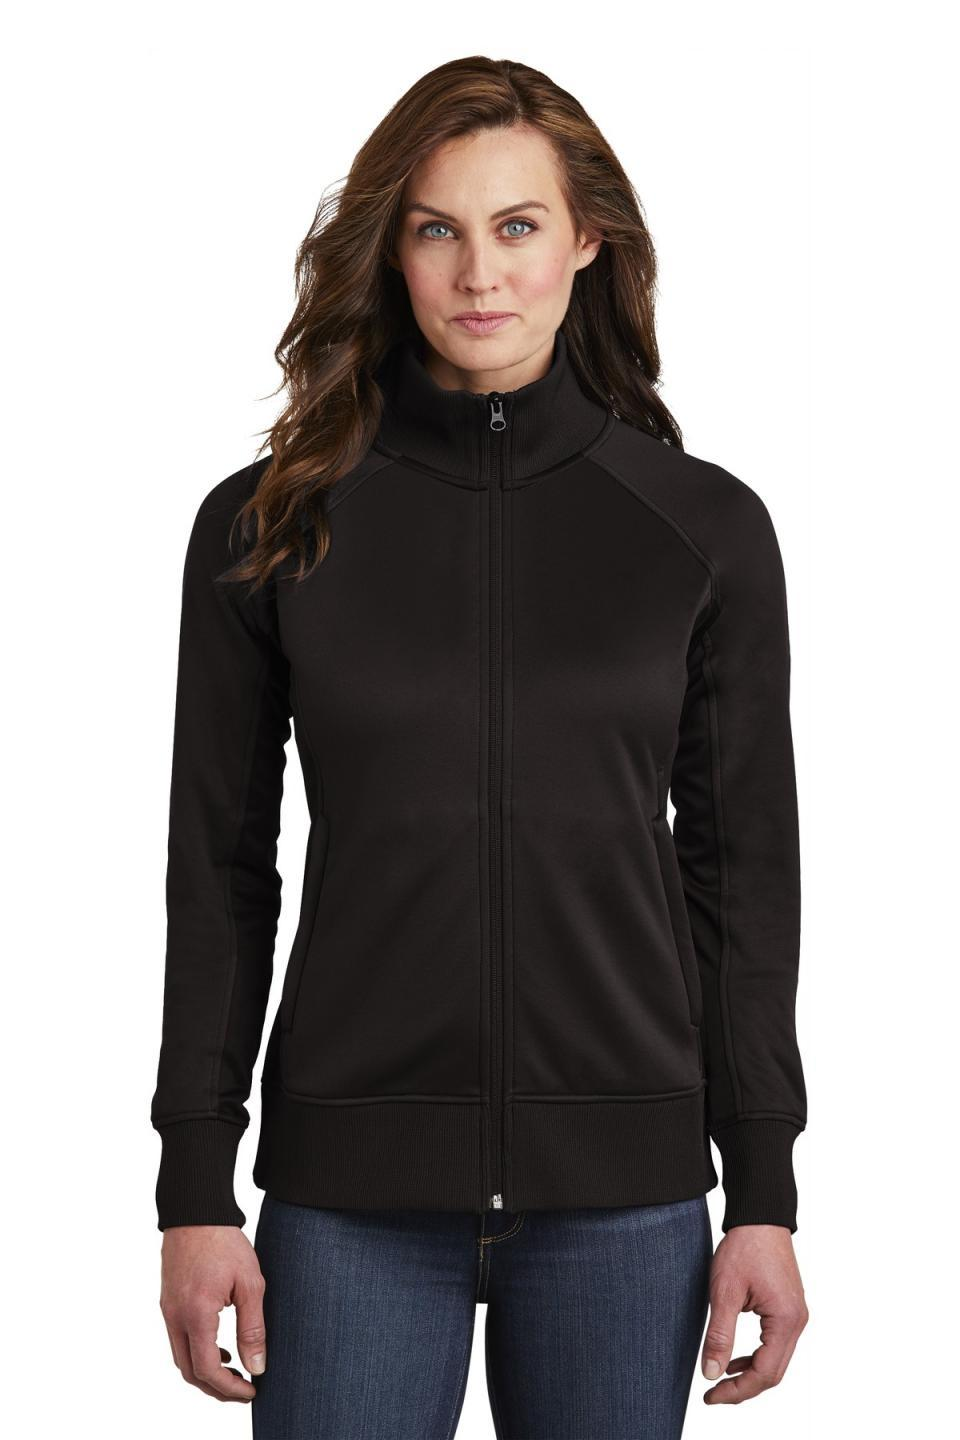 The North Face Women's Tech Full-Zip Fleece Jacket